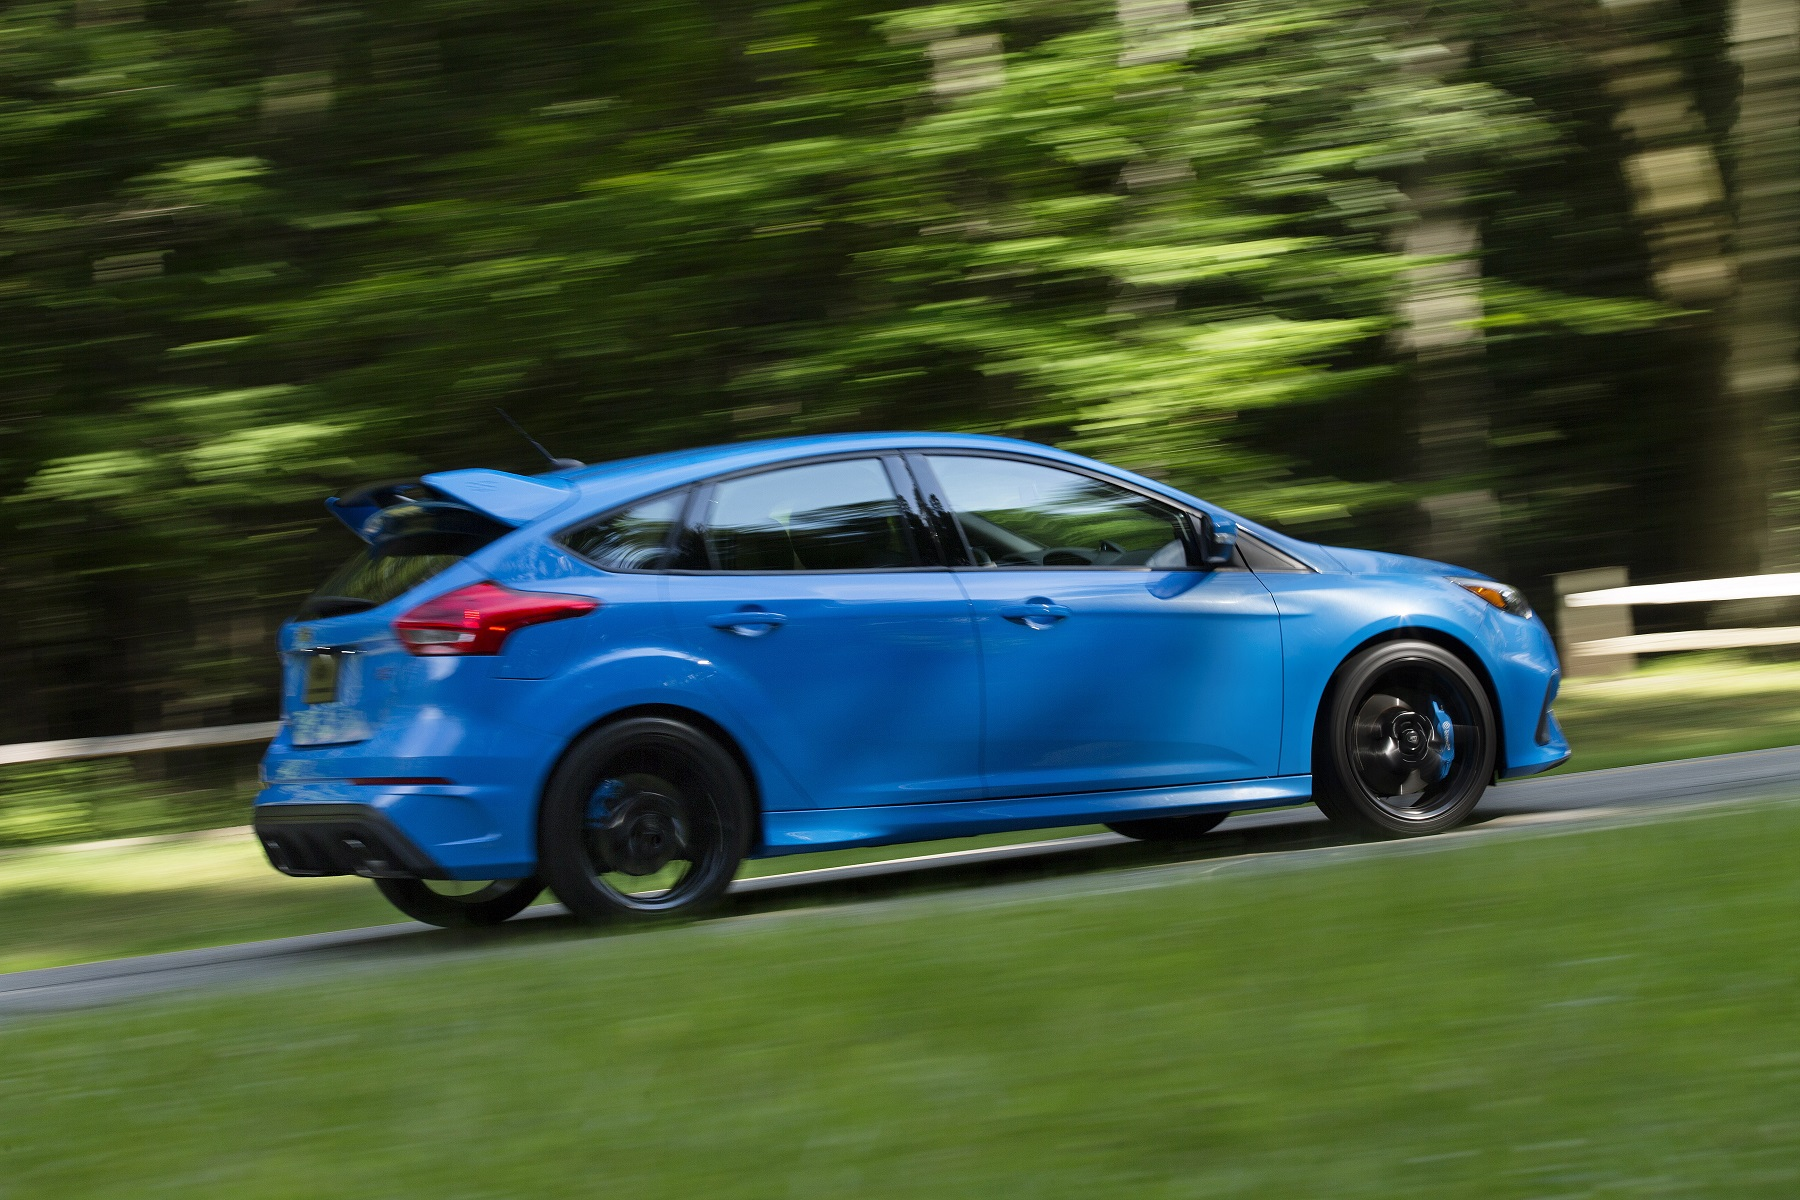 Except for the custom 19-inch wheels and a few other styling fillips the Focus RS does not betray its economy compact origin which makes it something of a ... & 2017 Ford Focus RS: Hot Performance Hatch - New on Wheels ... markmcfarlin.com